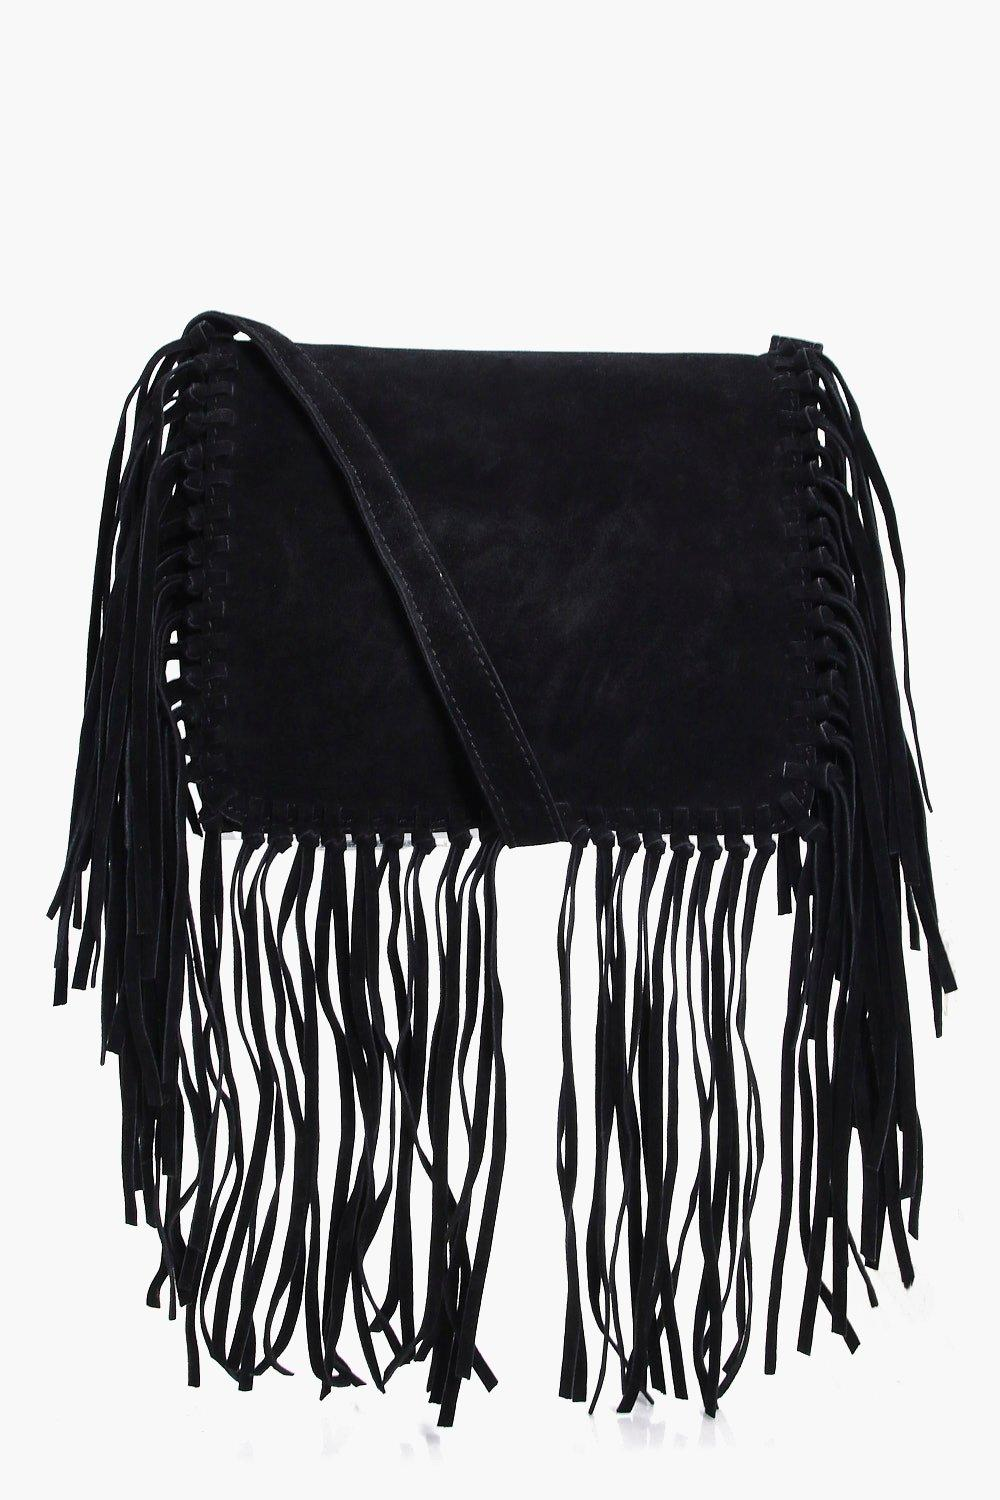 Fringed Detail Cross Body Bag - black - Sarah Frin